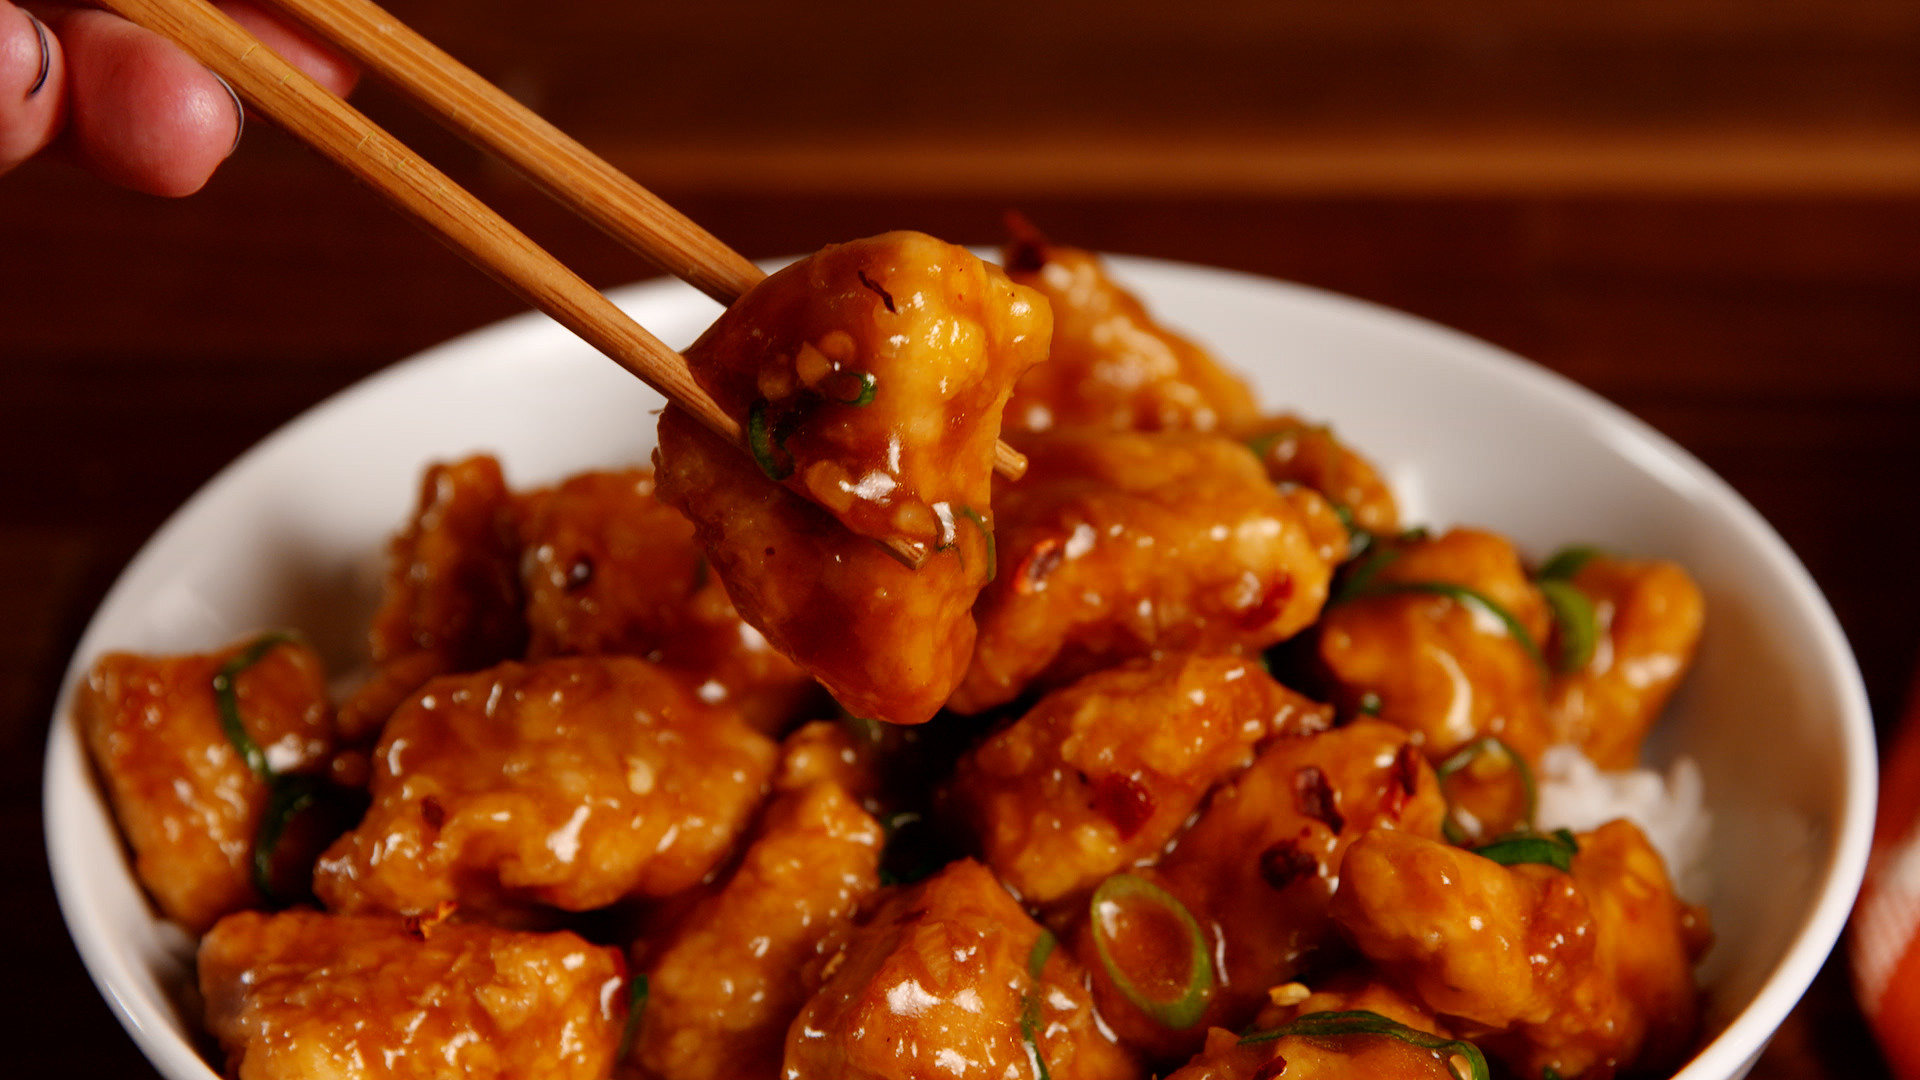 Easy Chinese Food Recipes  20 Easy Asian Food Recipes Best Asian Dinner Ideas